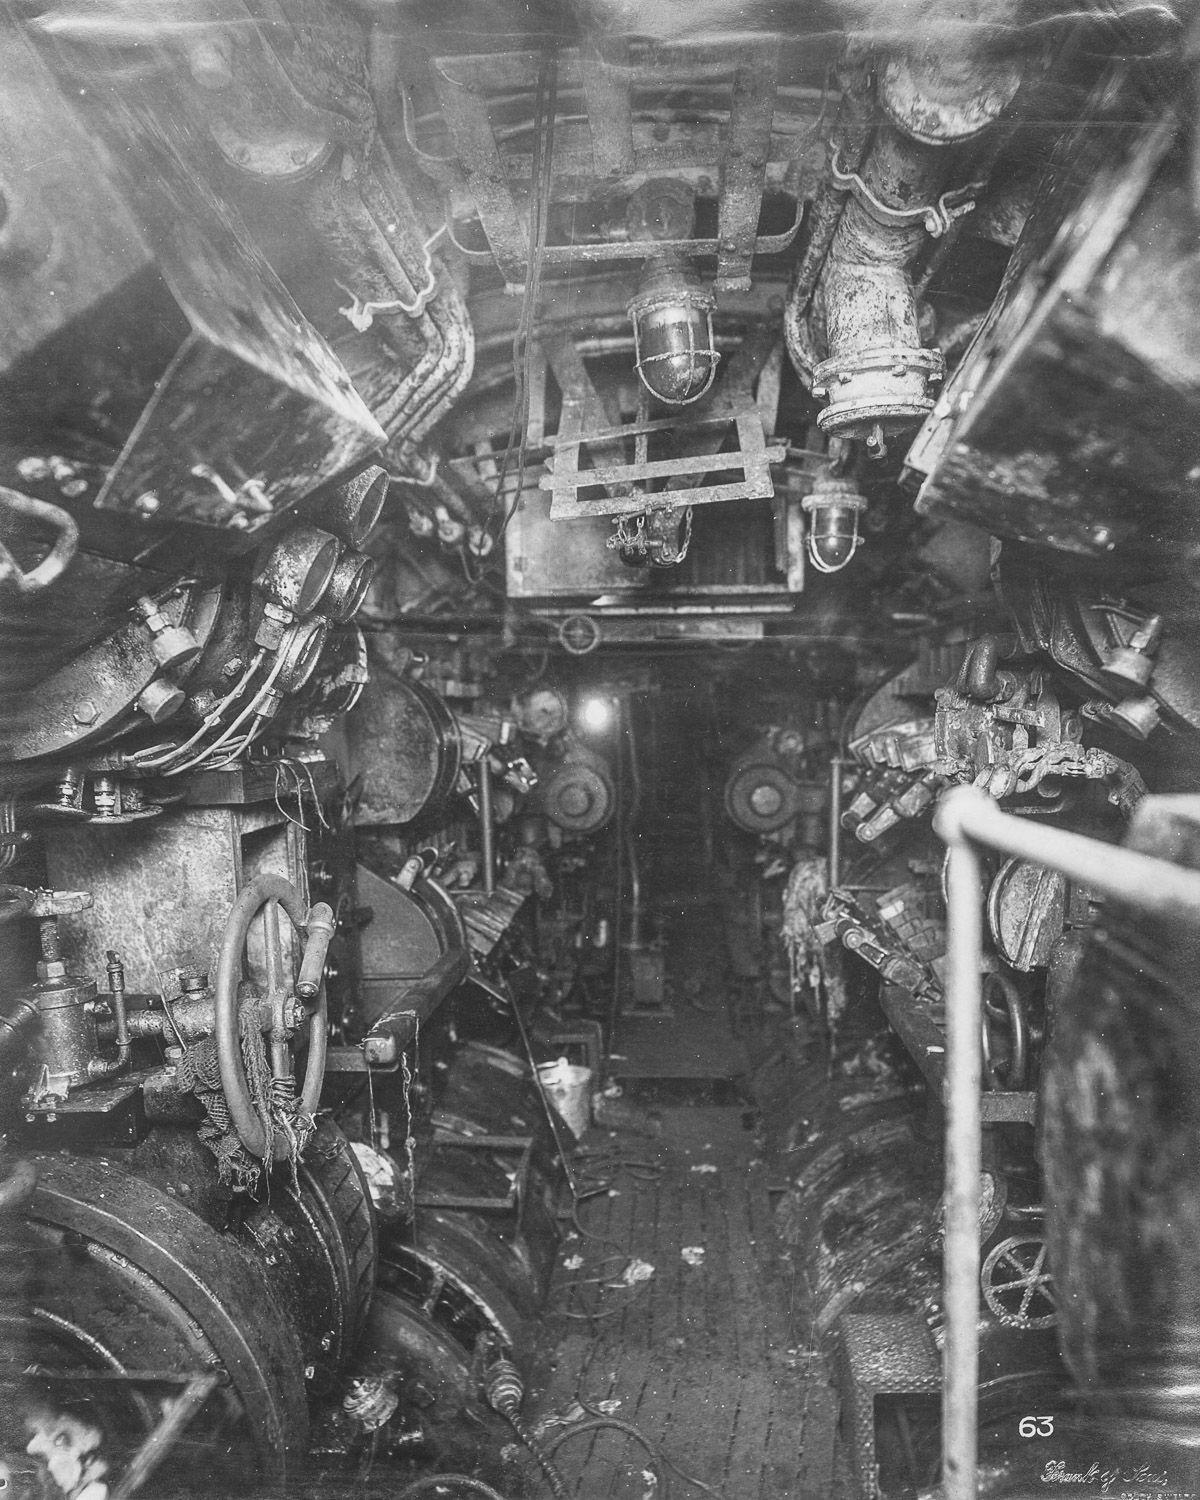 Boat Engine Room: U-Boat 110: Ghostly Images Give A Rare Glimpse Into The